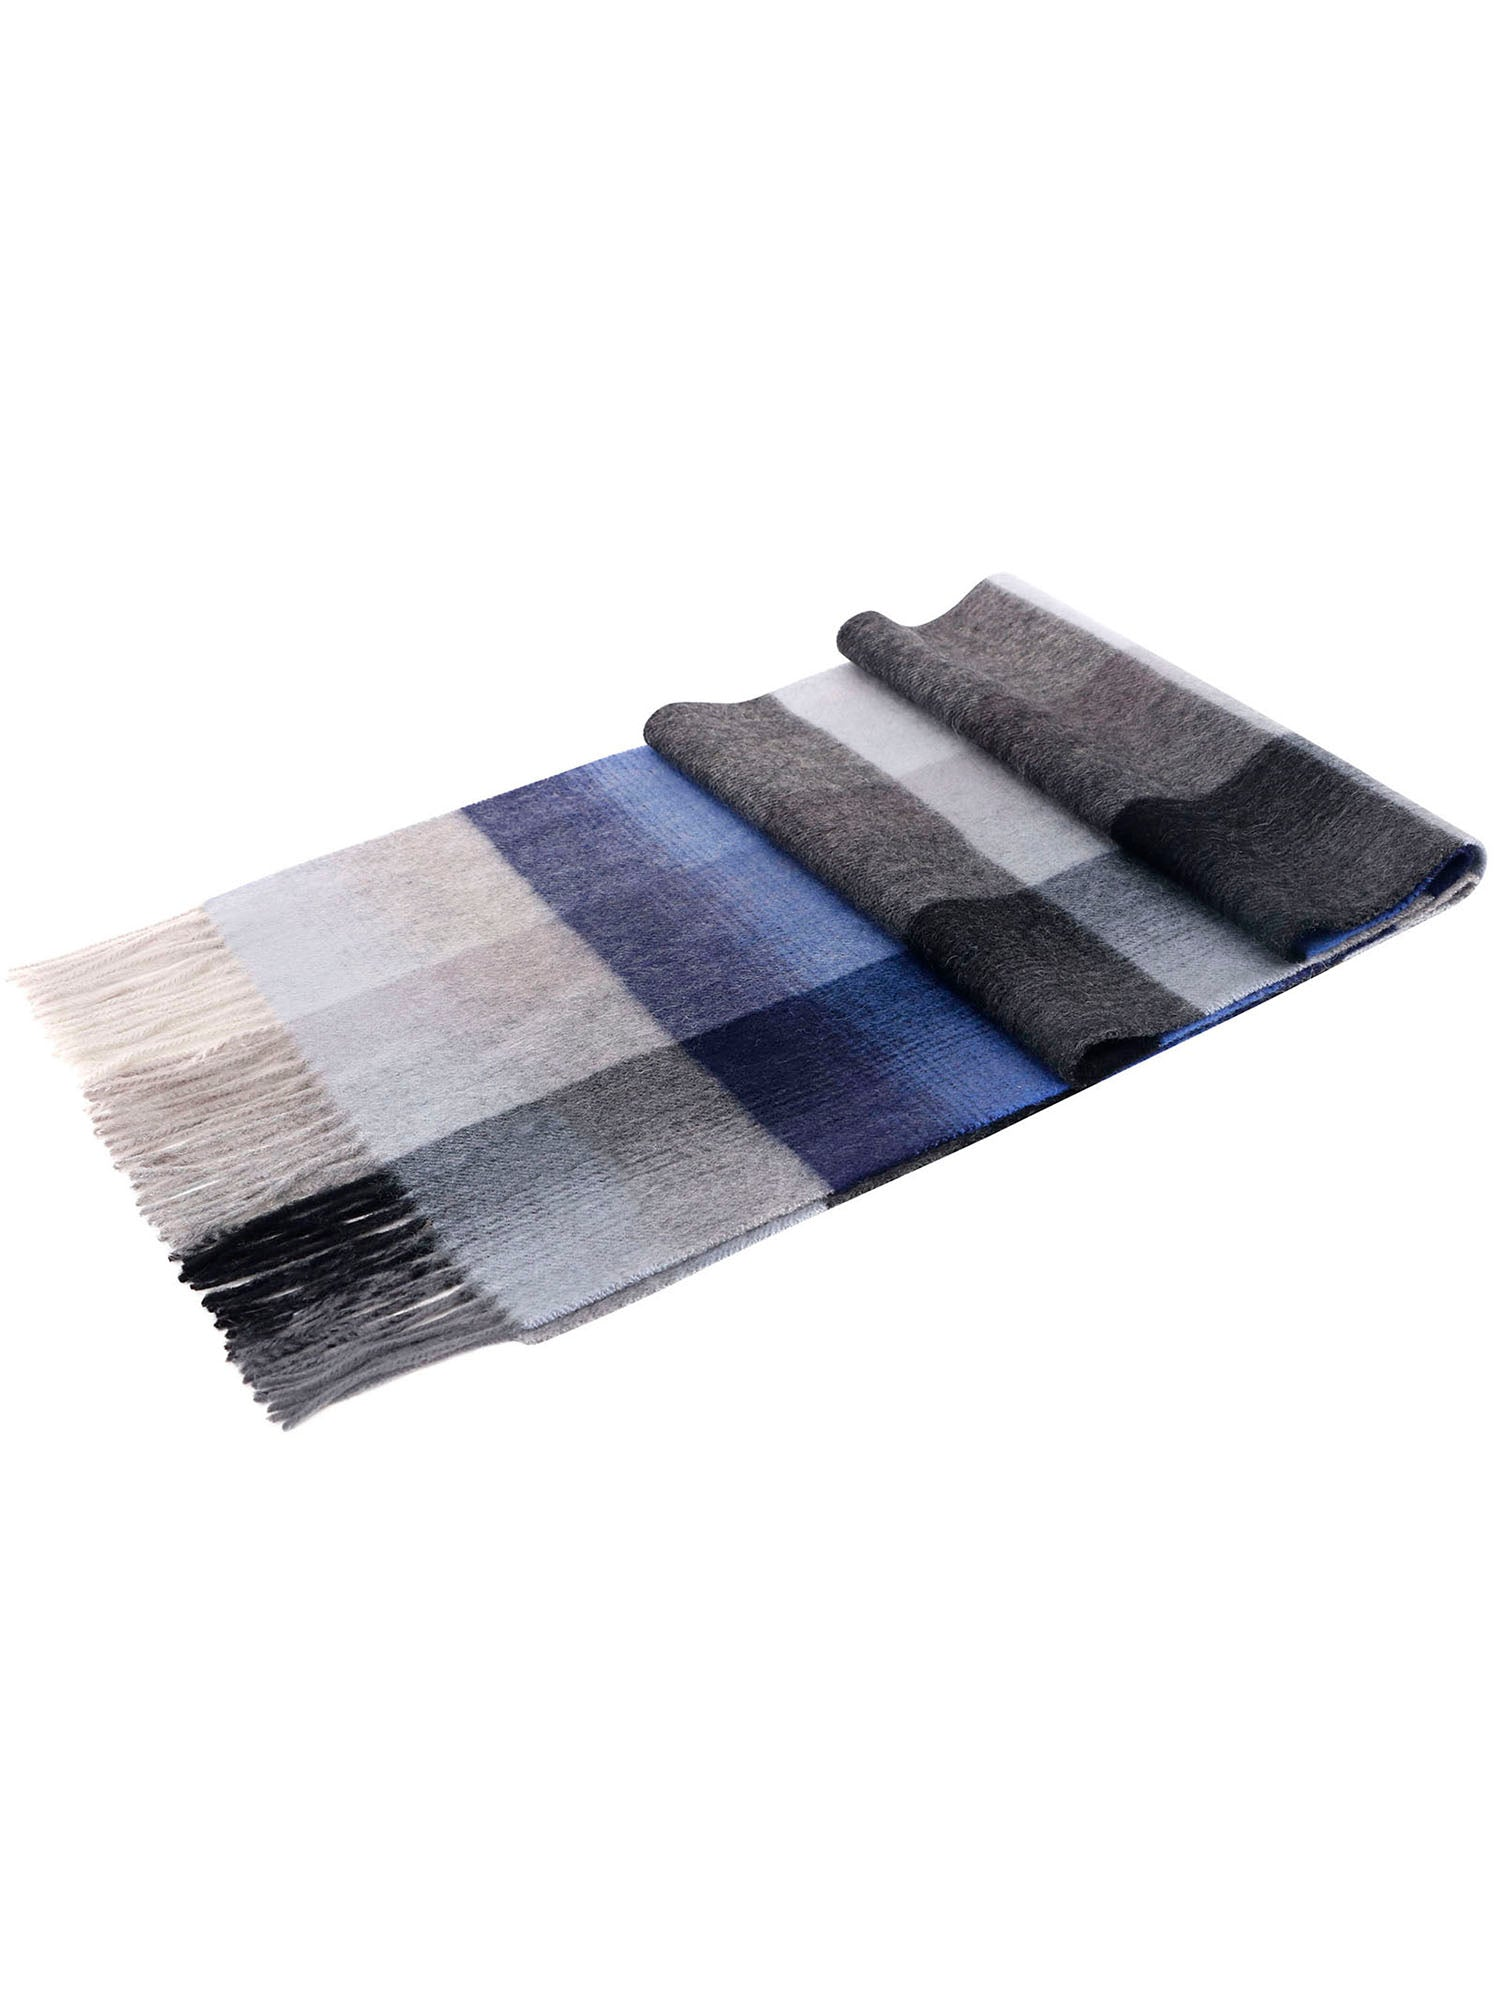 gift scarf beloved ones free and fast shipping in US